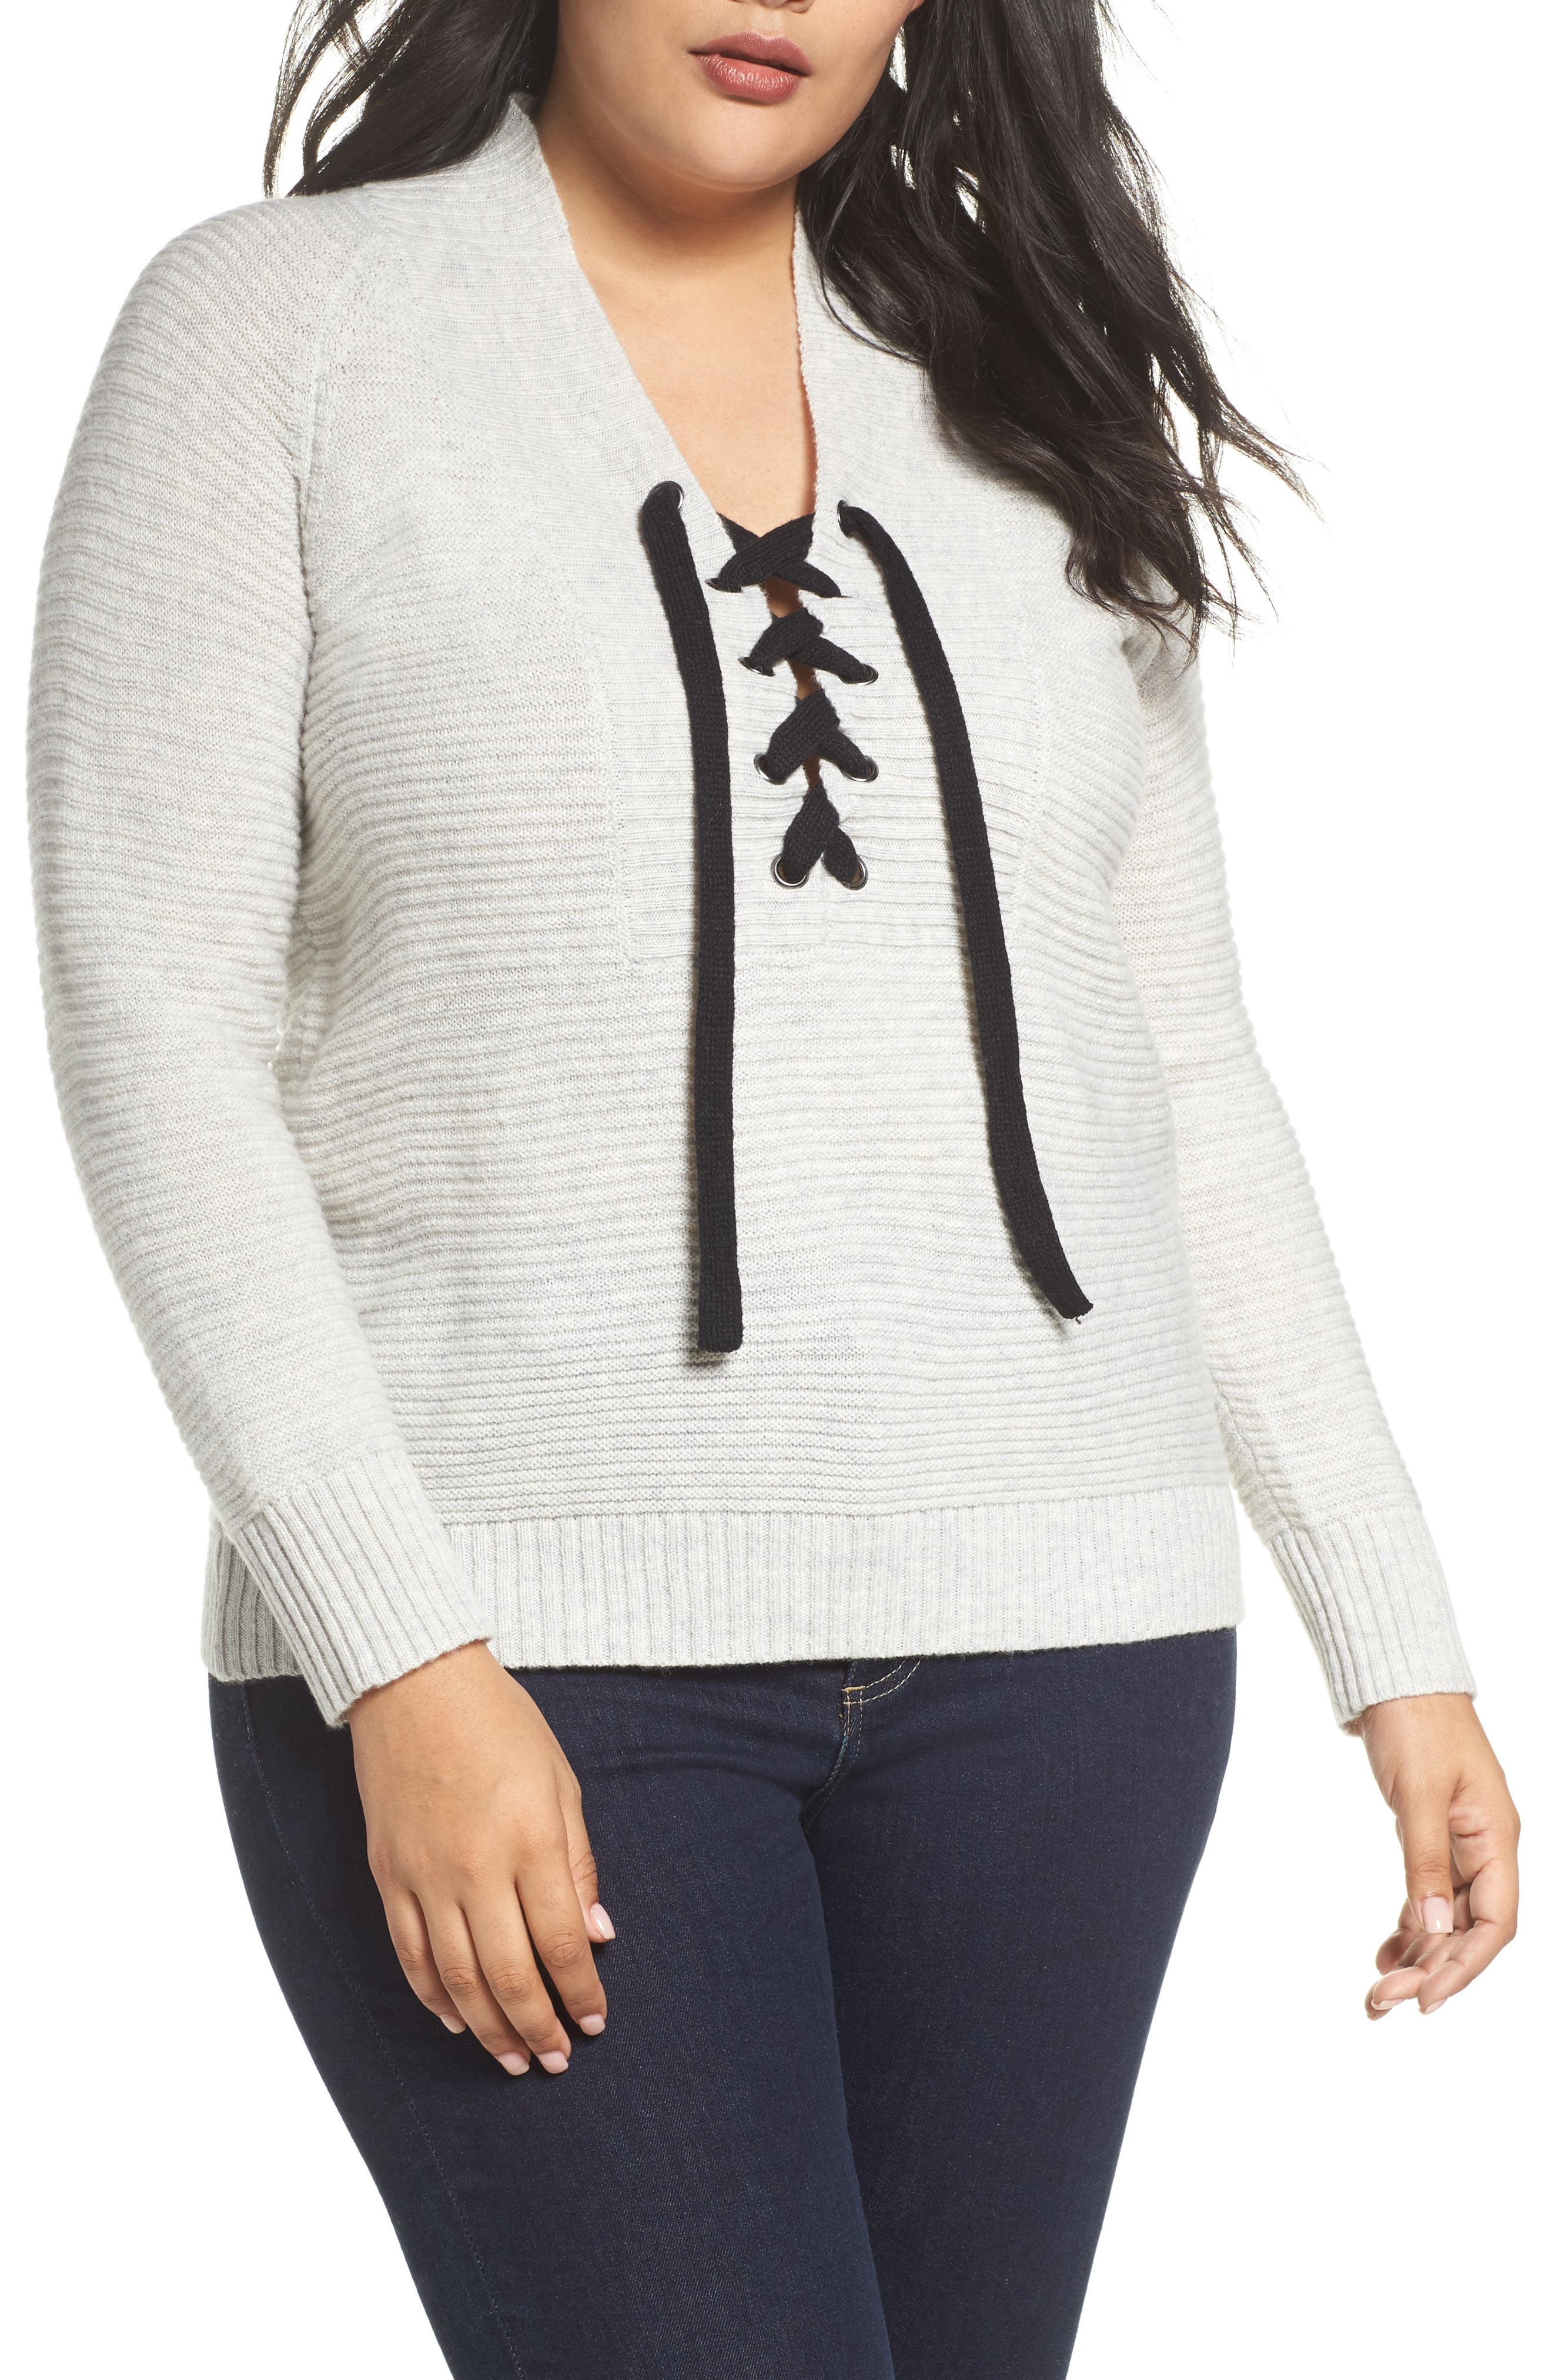 Main Image - Lucky Brand Lace-Up Sweater (Plus Size)